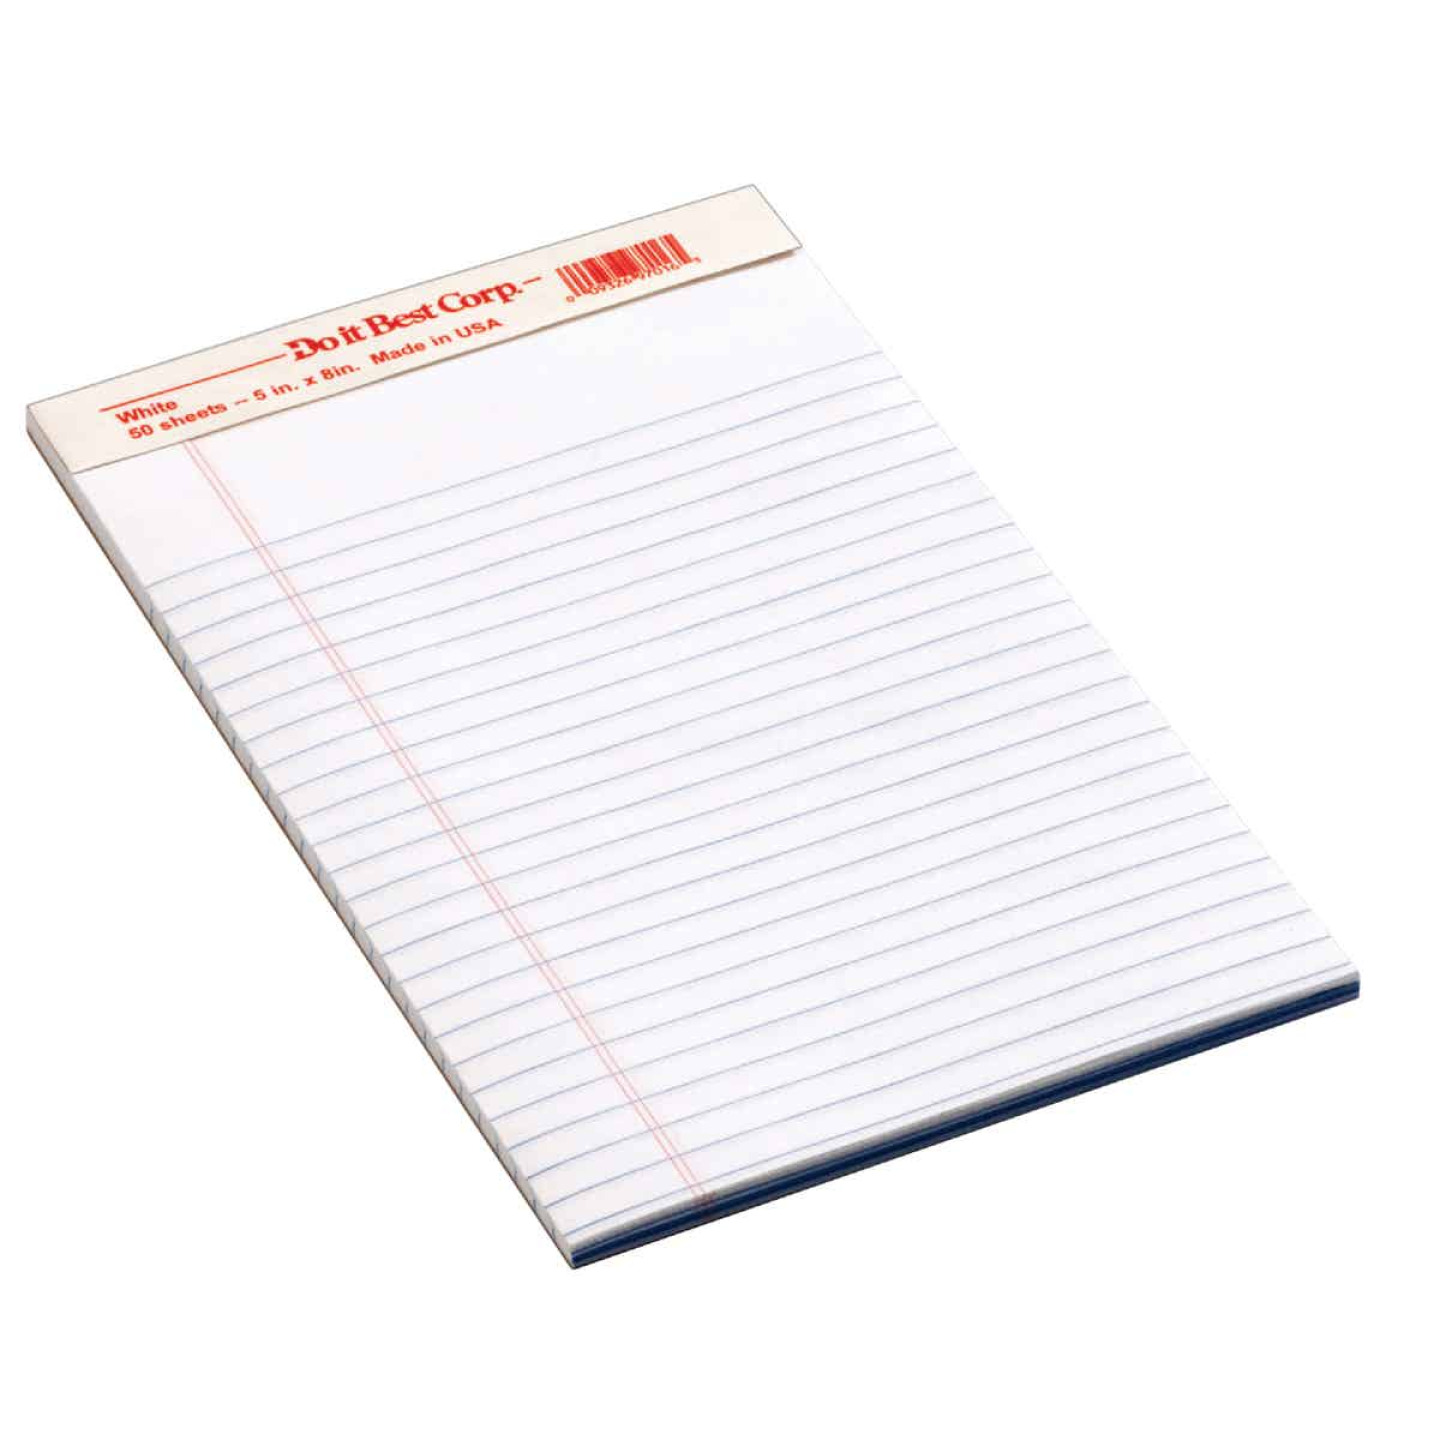 Staples 5 In. W. x 8 In. H. 50-Sheet White Top Bound Legal Pad (12-Pack) Image 1